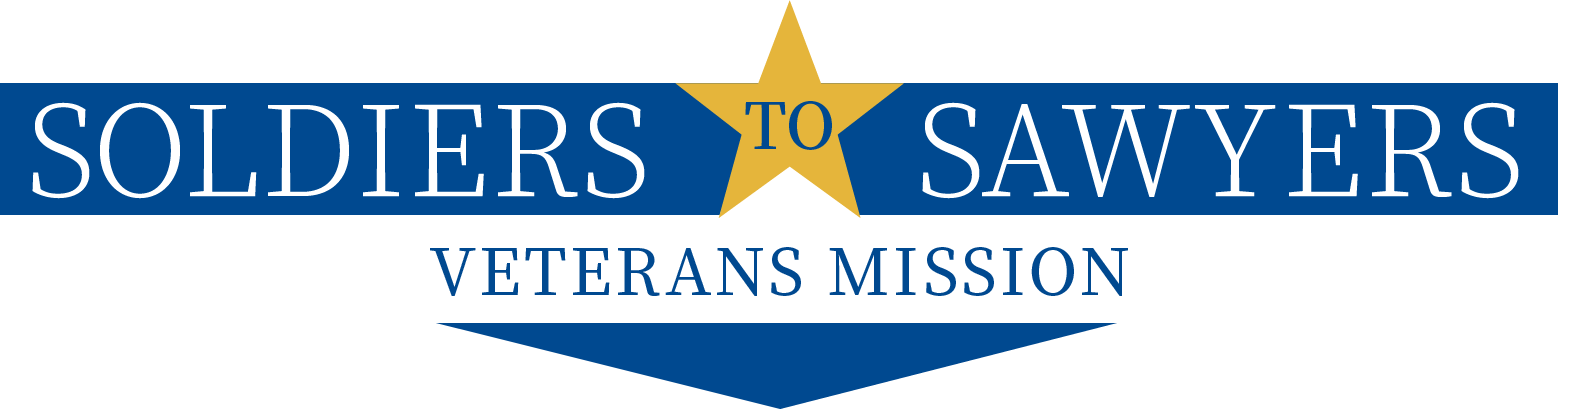 soldiers to sawyers veterans mission